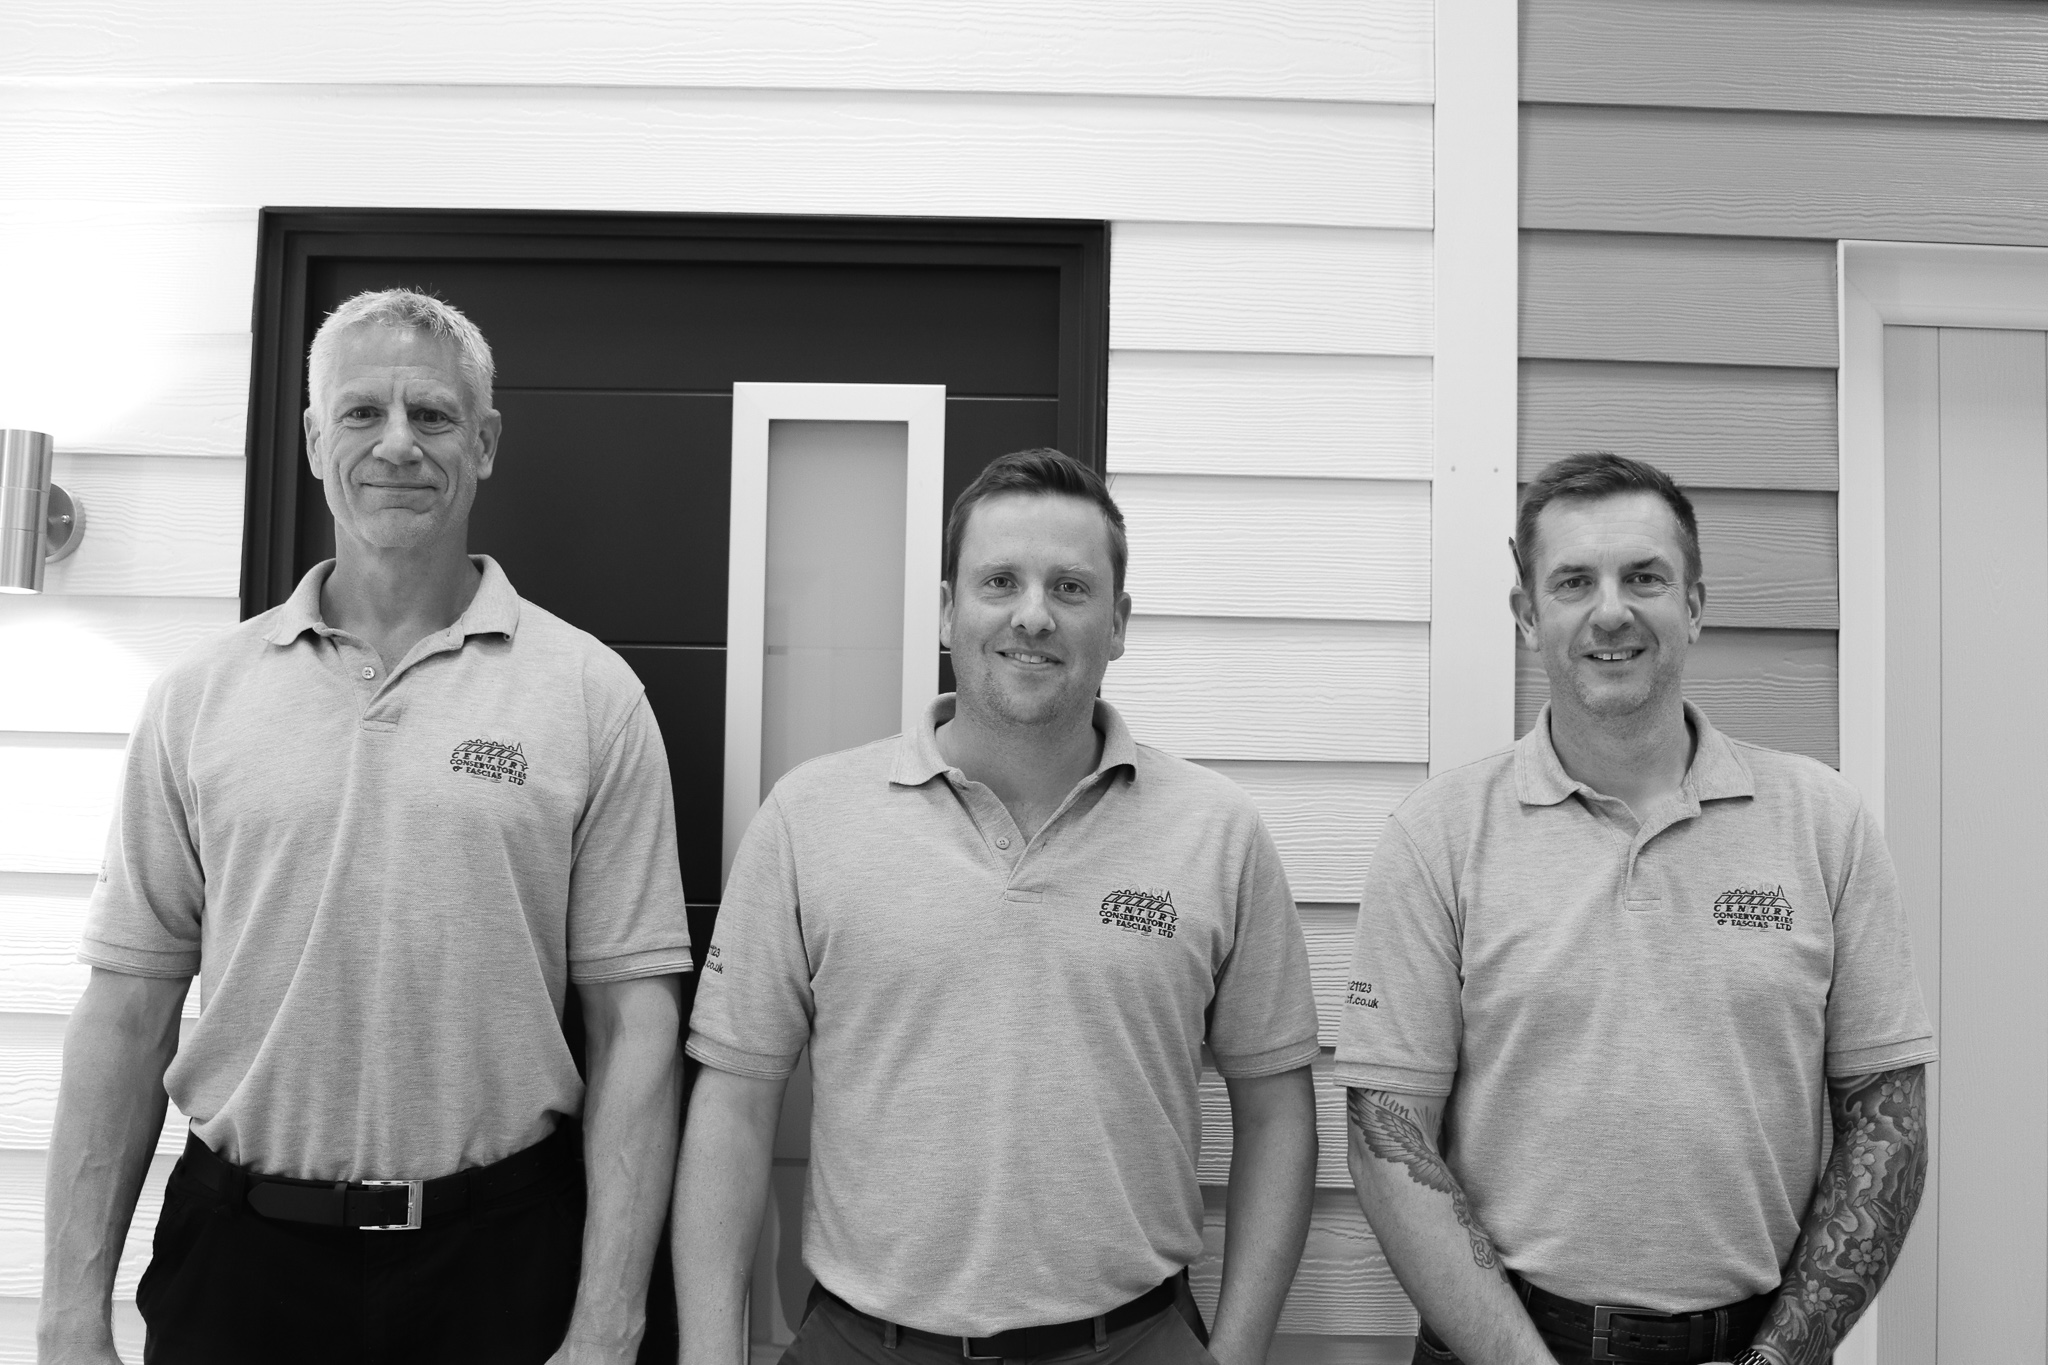 Meet the directors of 21st Century, Ian, James and Dave.